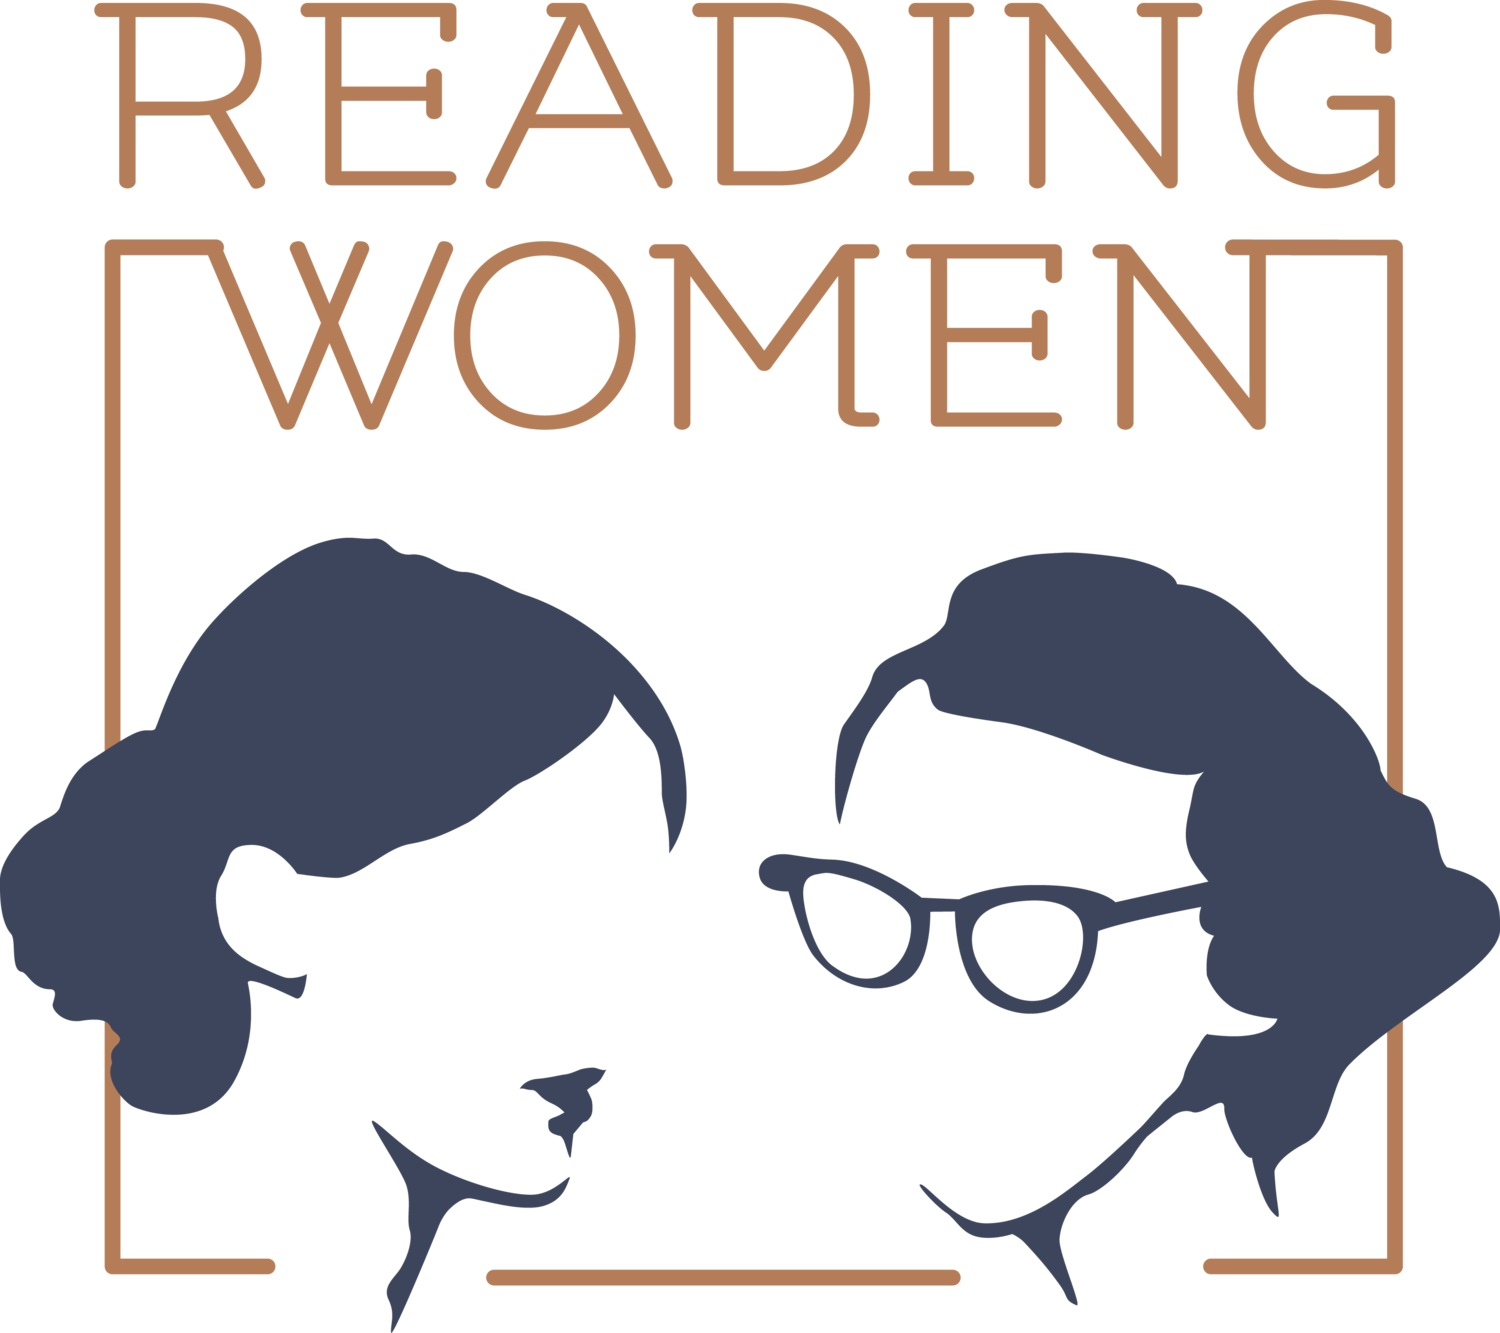 Reading Women Logo